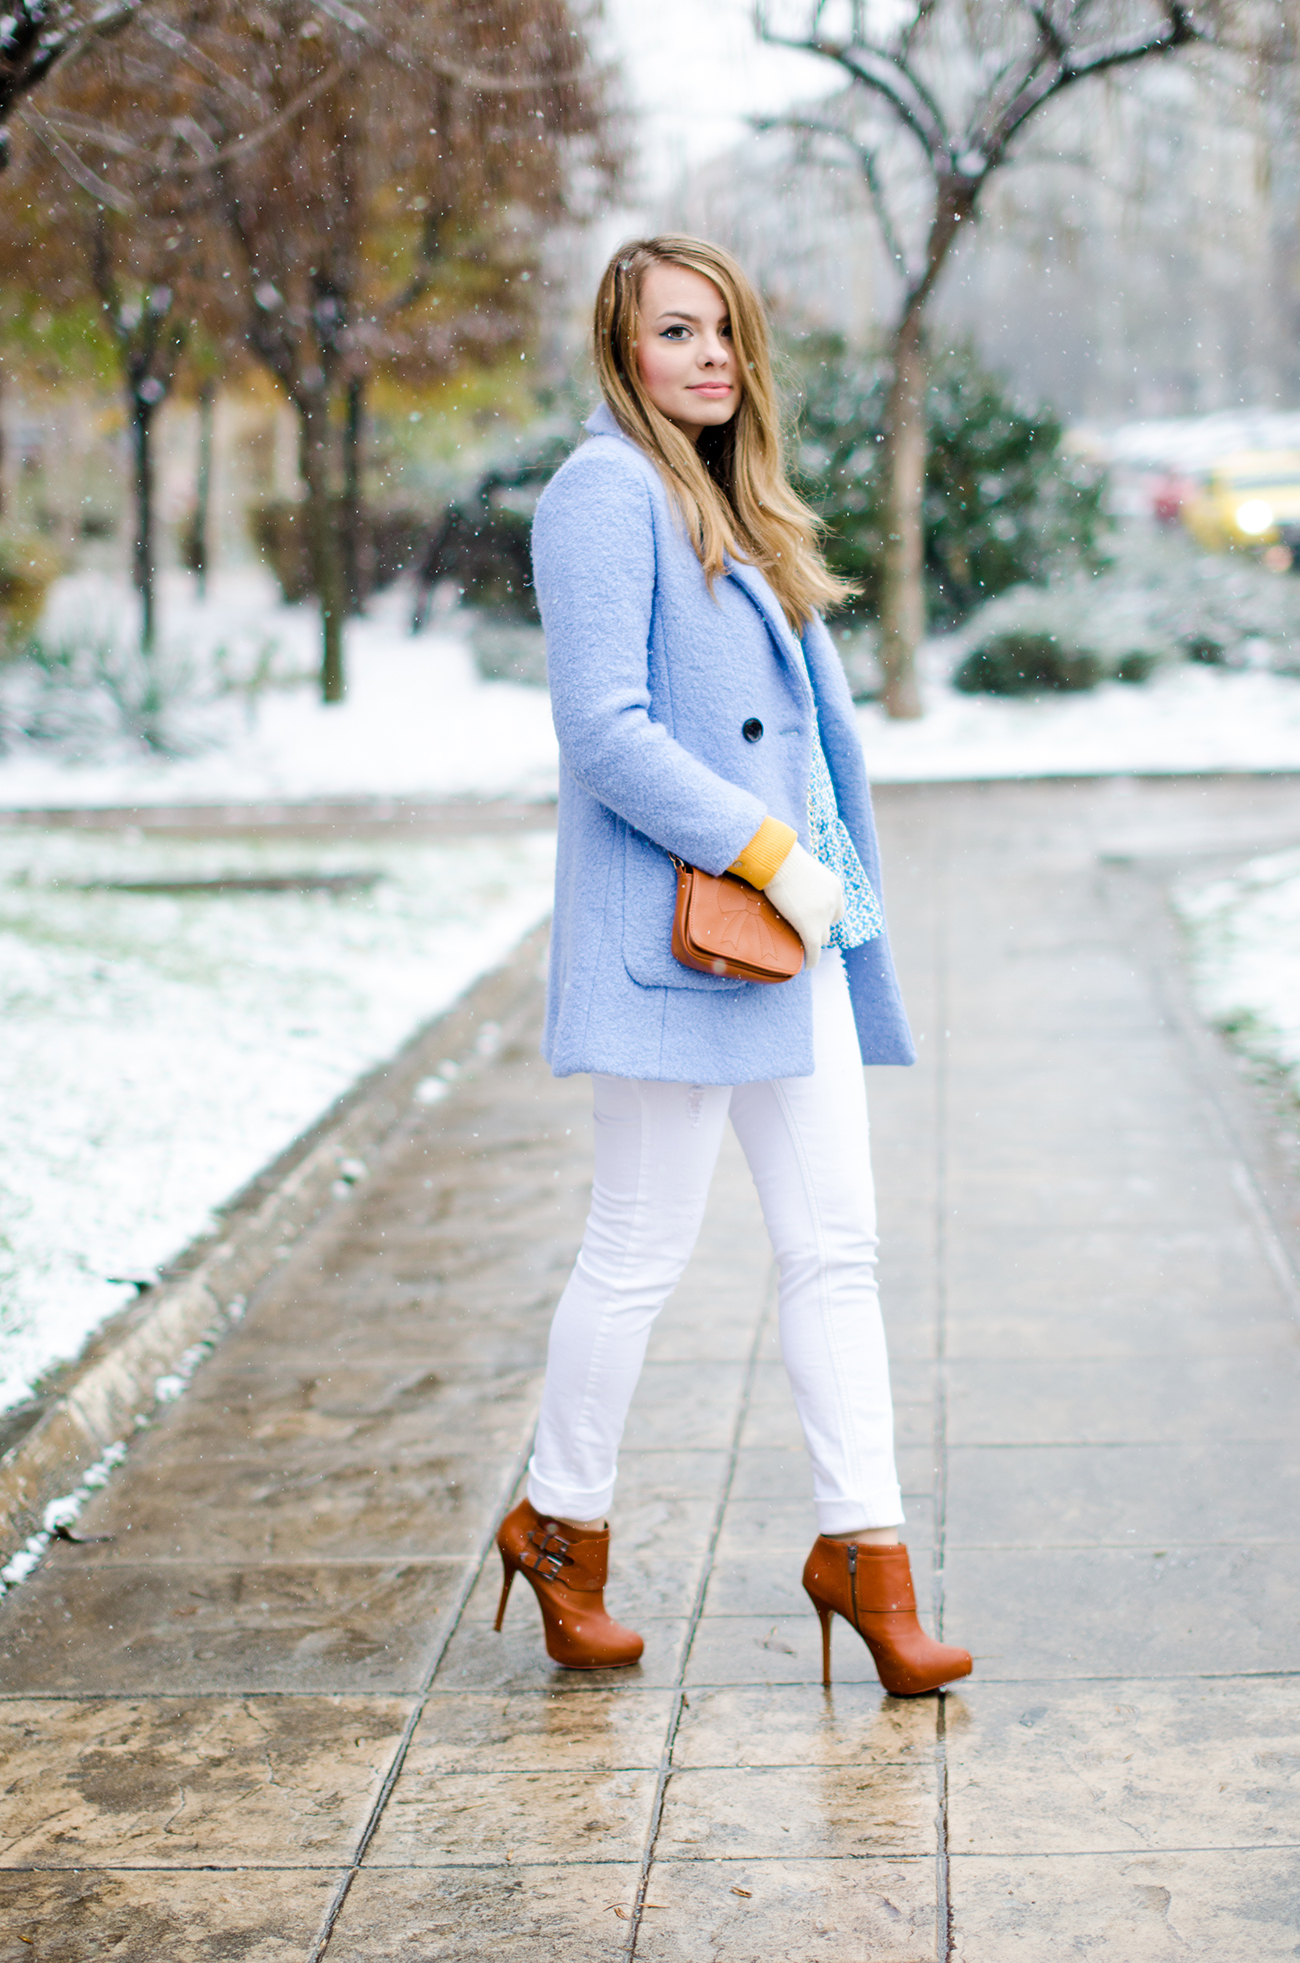 WINTER WONDERLAND AND THE BABY BLUE COAT - Pink WishPink Wish